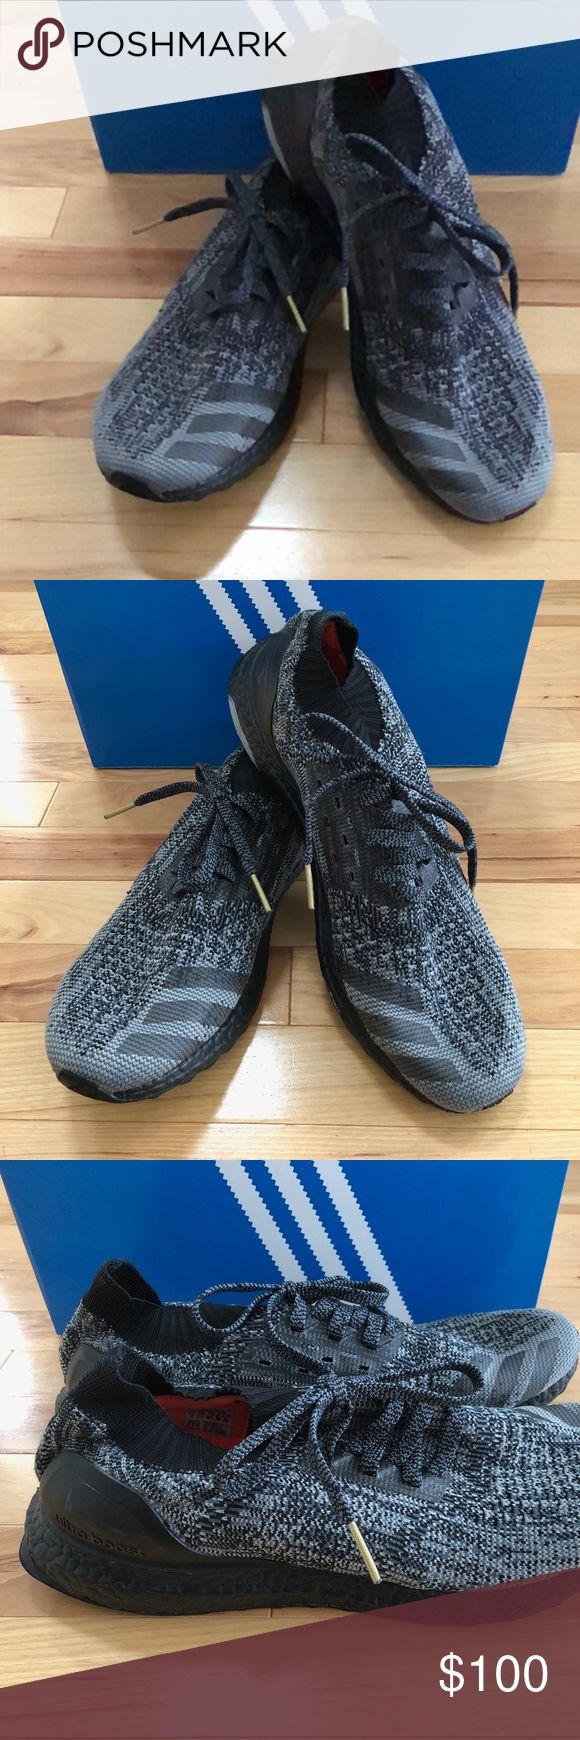 Adidas Mens Ultra Boosts Uncaged Adidas Mens Ultra Boosts Uncaged, size 12. Sneakers have been used for running on a treadmill indoors ONLY, about 150 miles. Bottoms have some wear and right inner shoe sole has small tear in material from pressure as shown in pictures. Price FIRM. adidas Shoes Sneakers